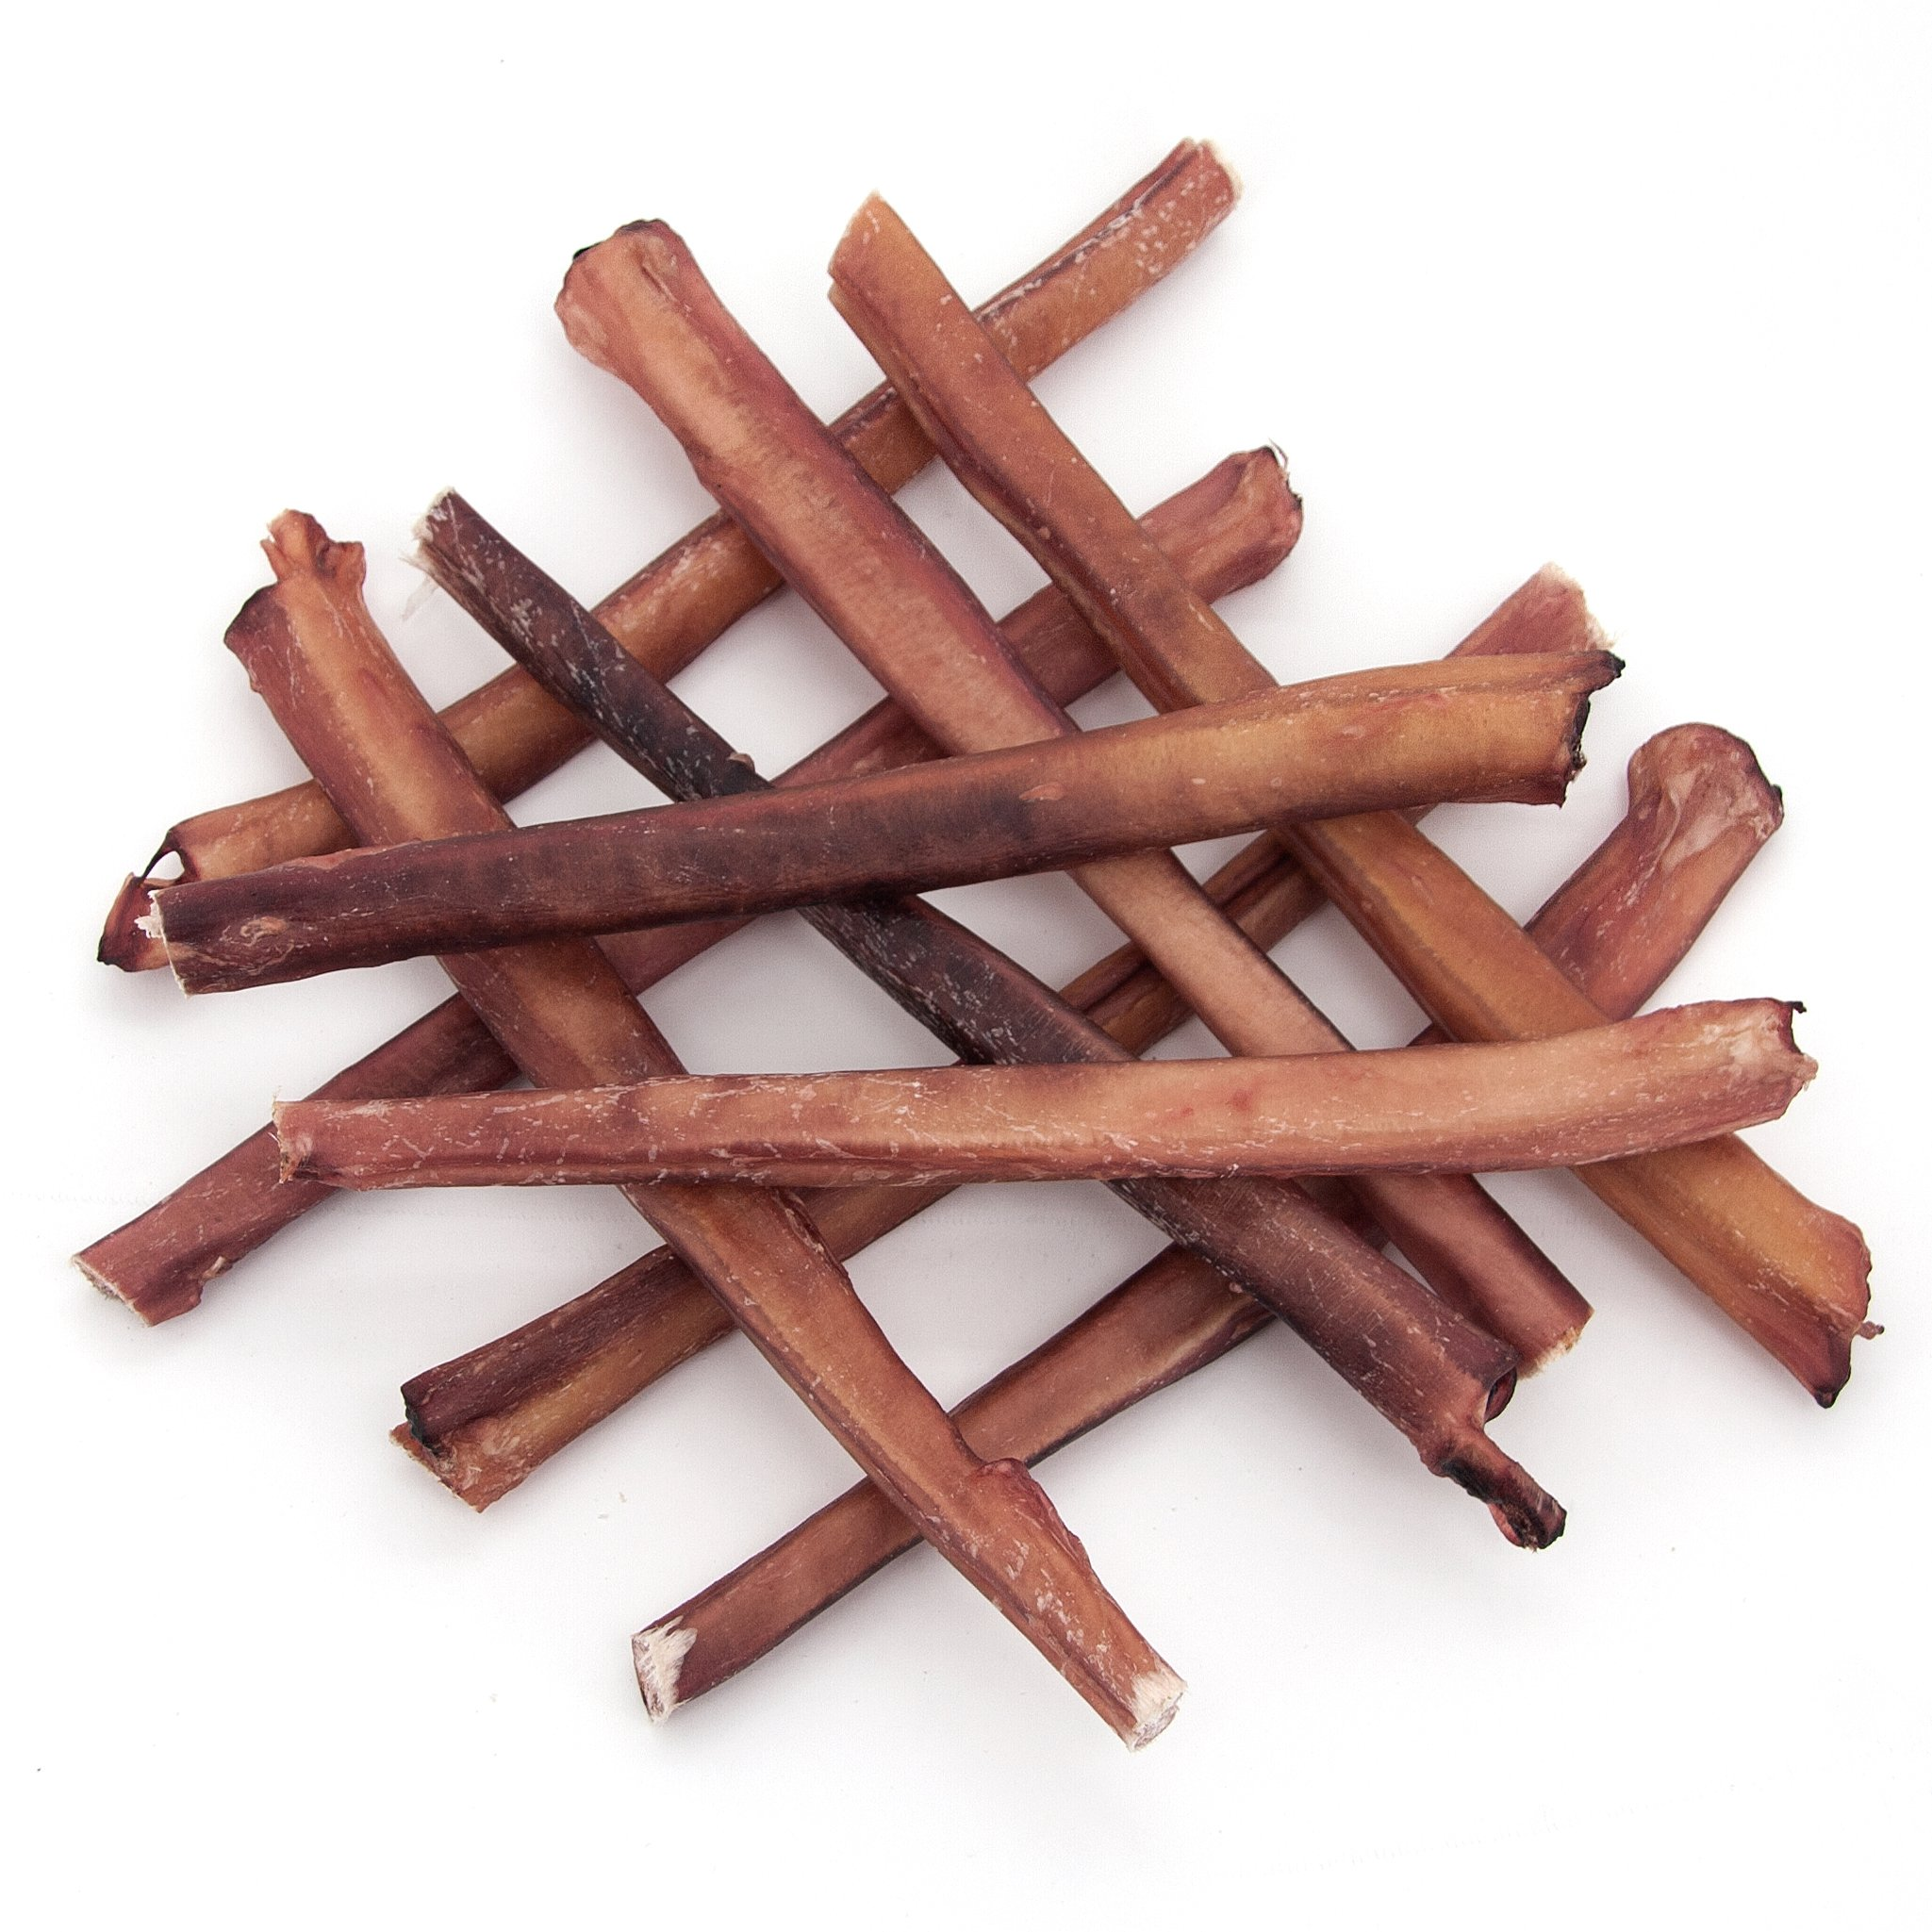 GigaBite Odor-Free Bully Sticks - USDA & FDA Certified All Natural, Free Range Beef Pizzle Dog Treat - by Best Pet Supplies by GigaBite